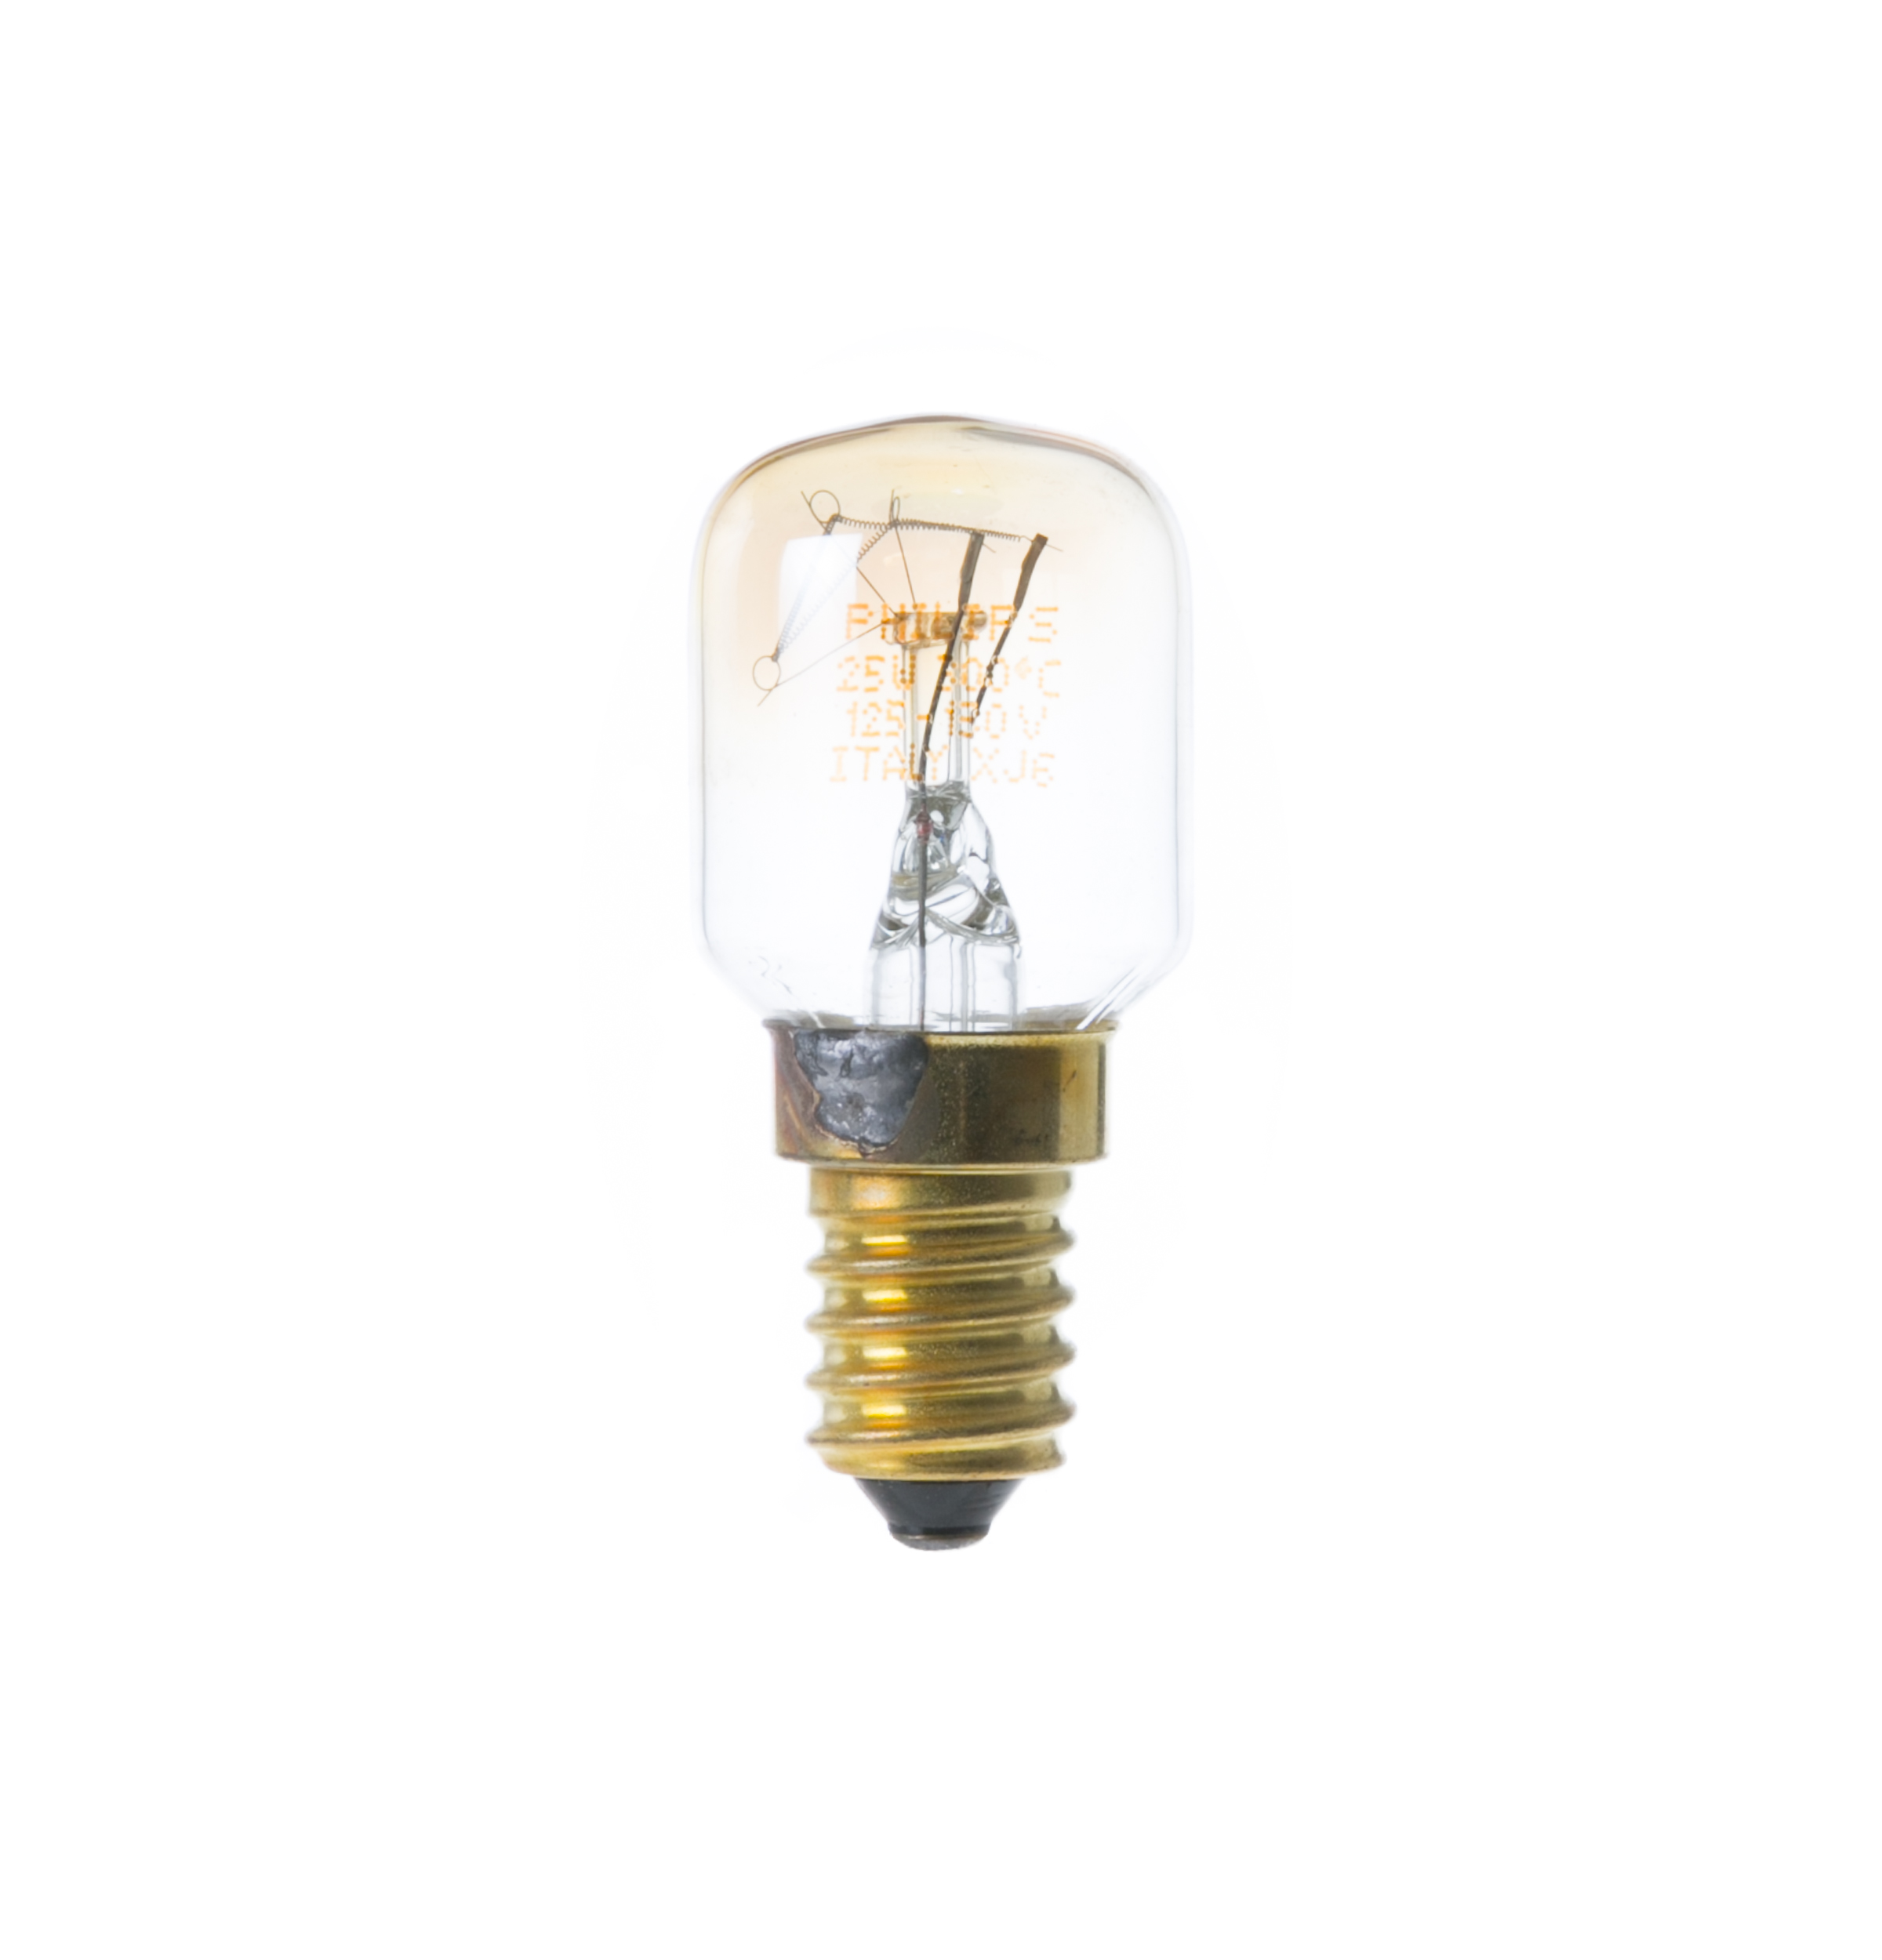 wb02x10413 oven light bulb 25w ge parts. Black Bedroom Furniture Sets. Home Design Ideas